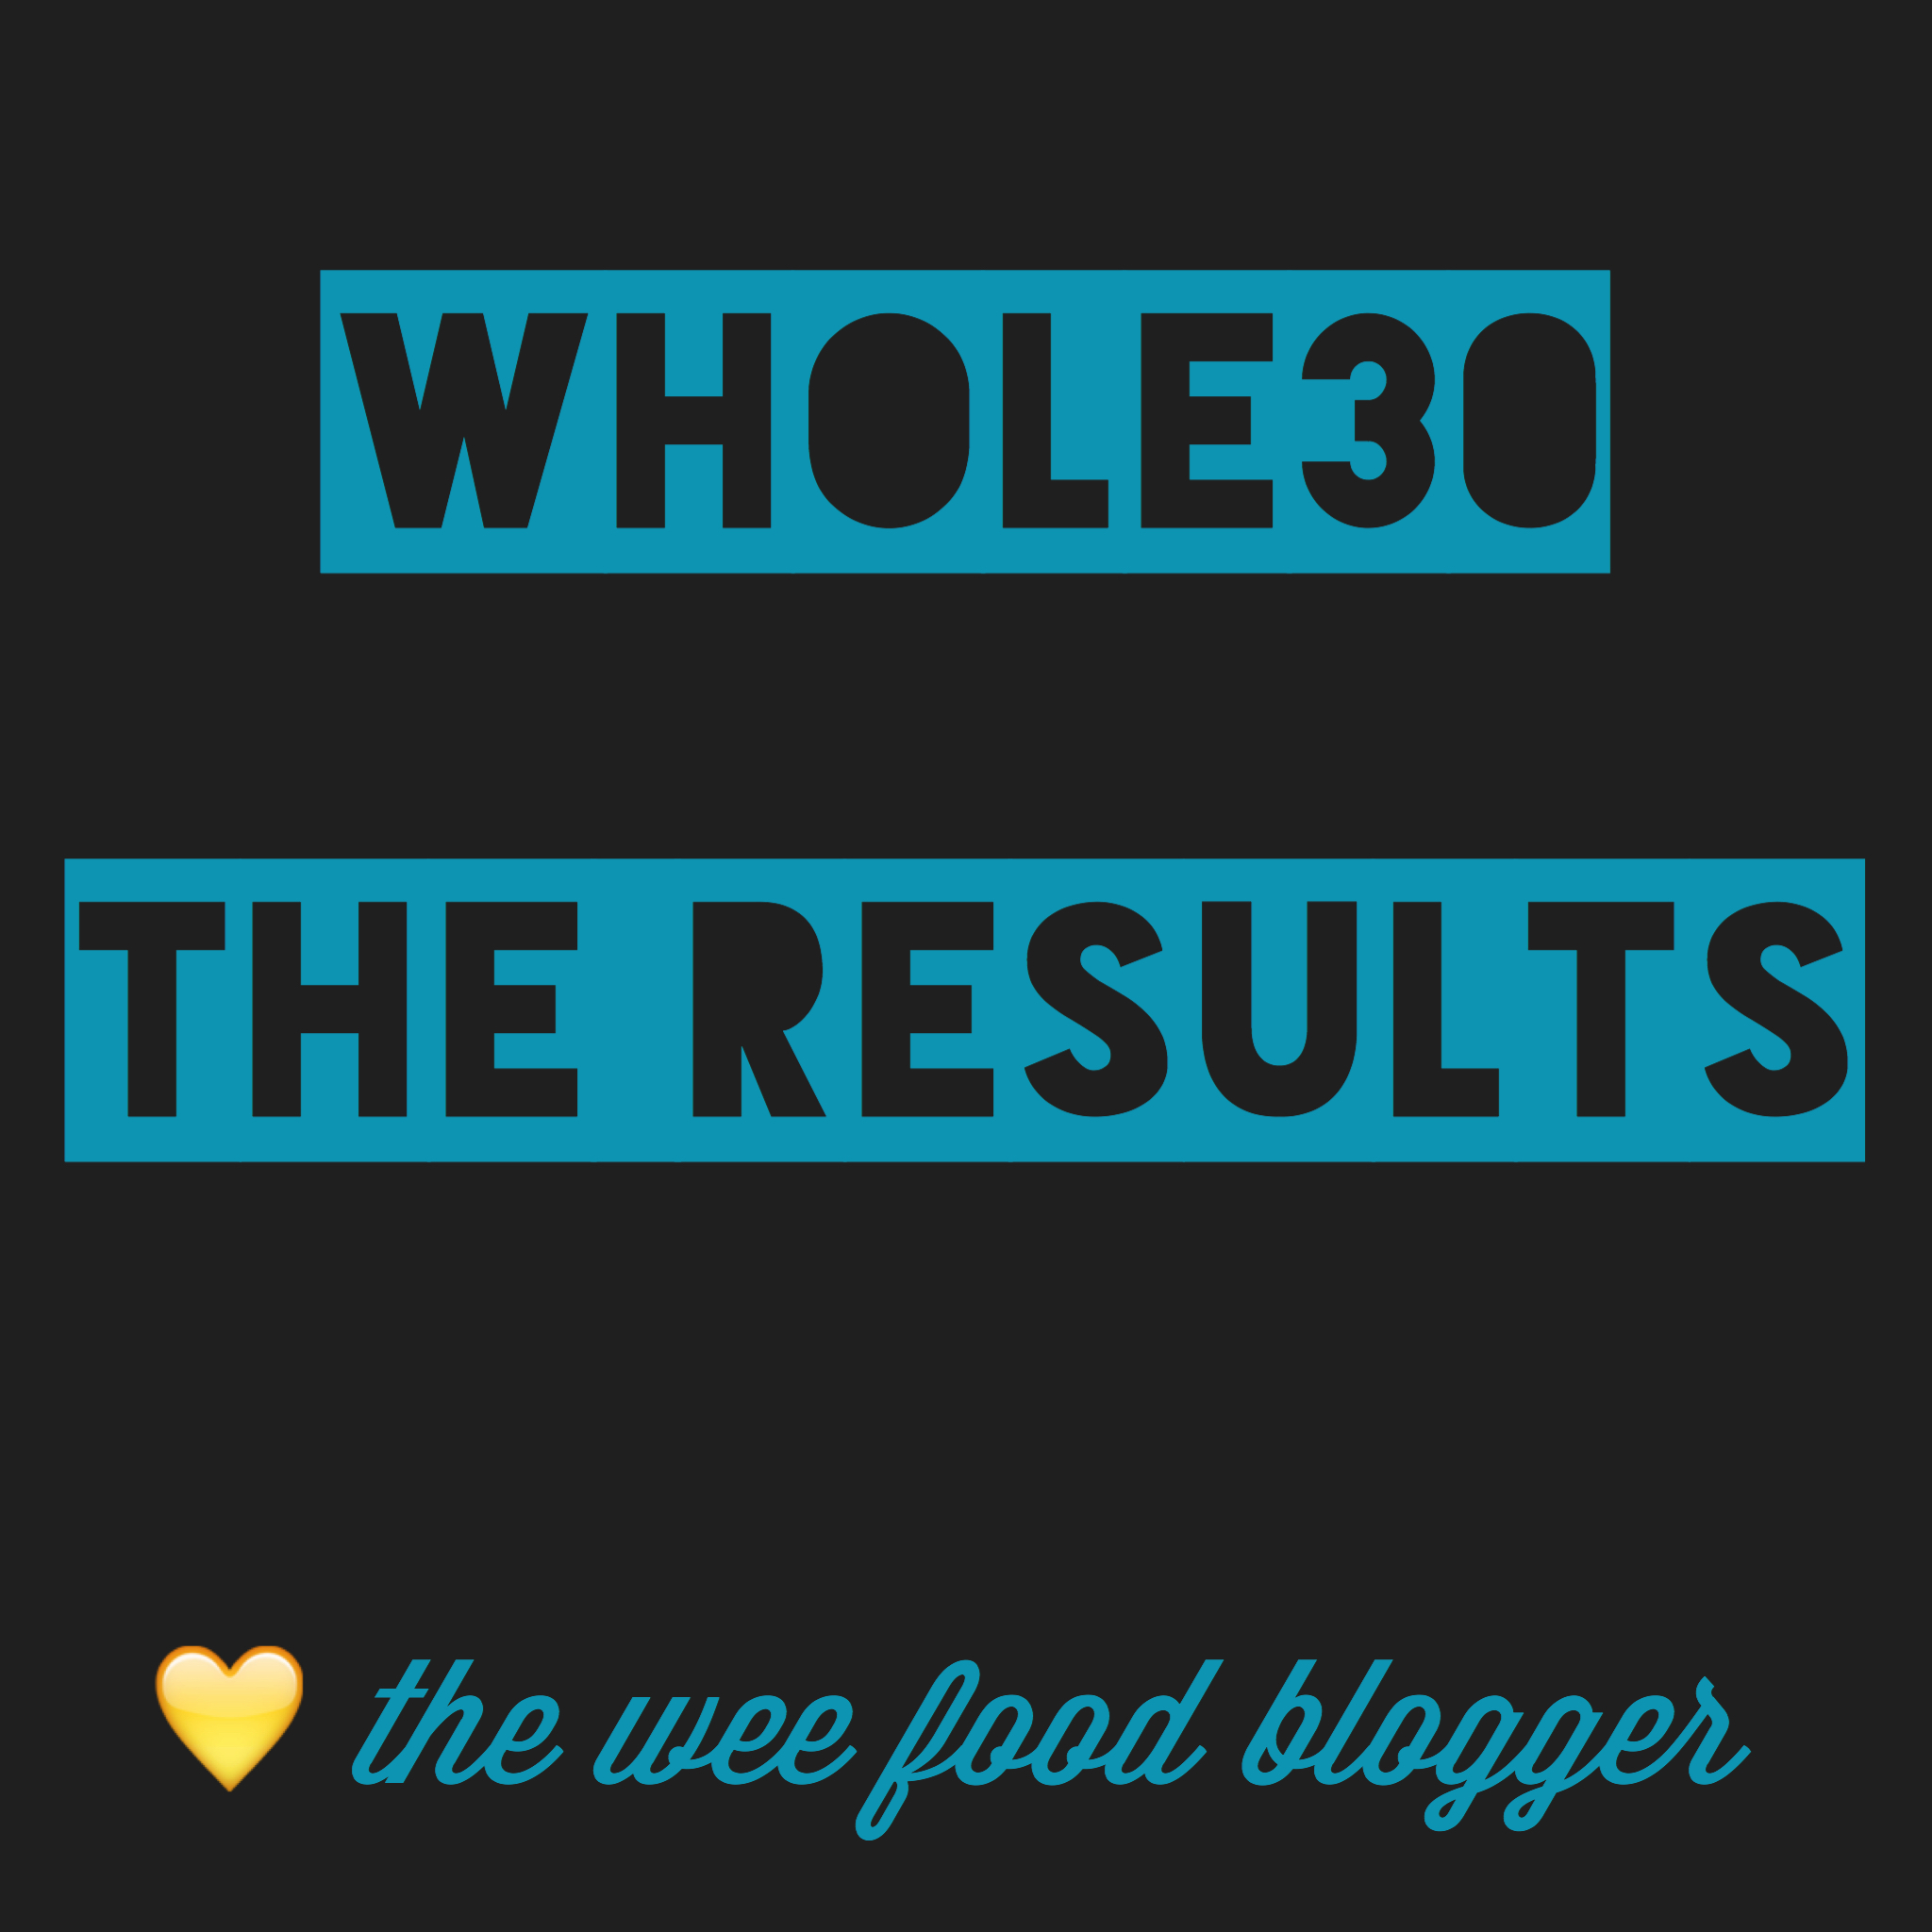 the wee food blogger© Whole30 results